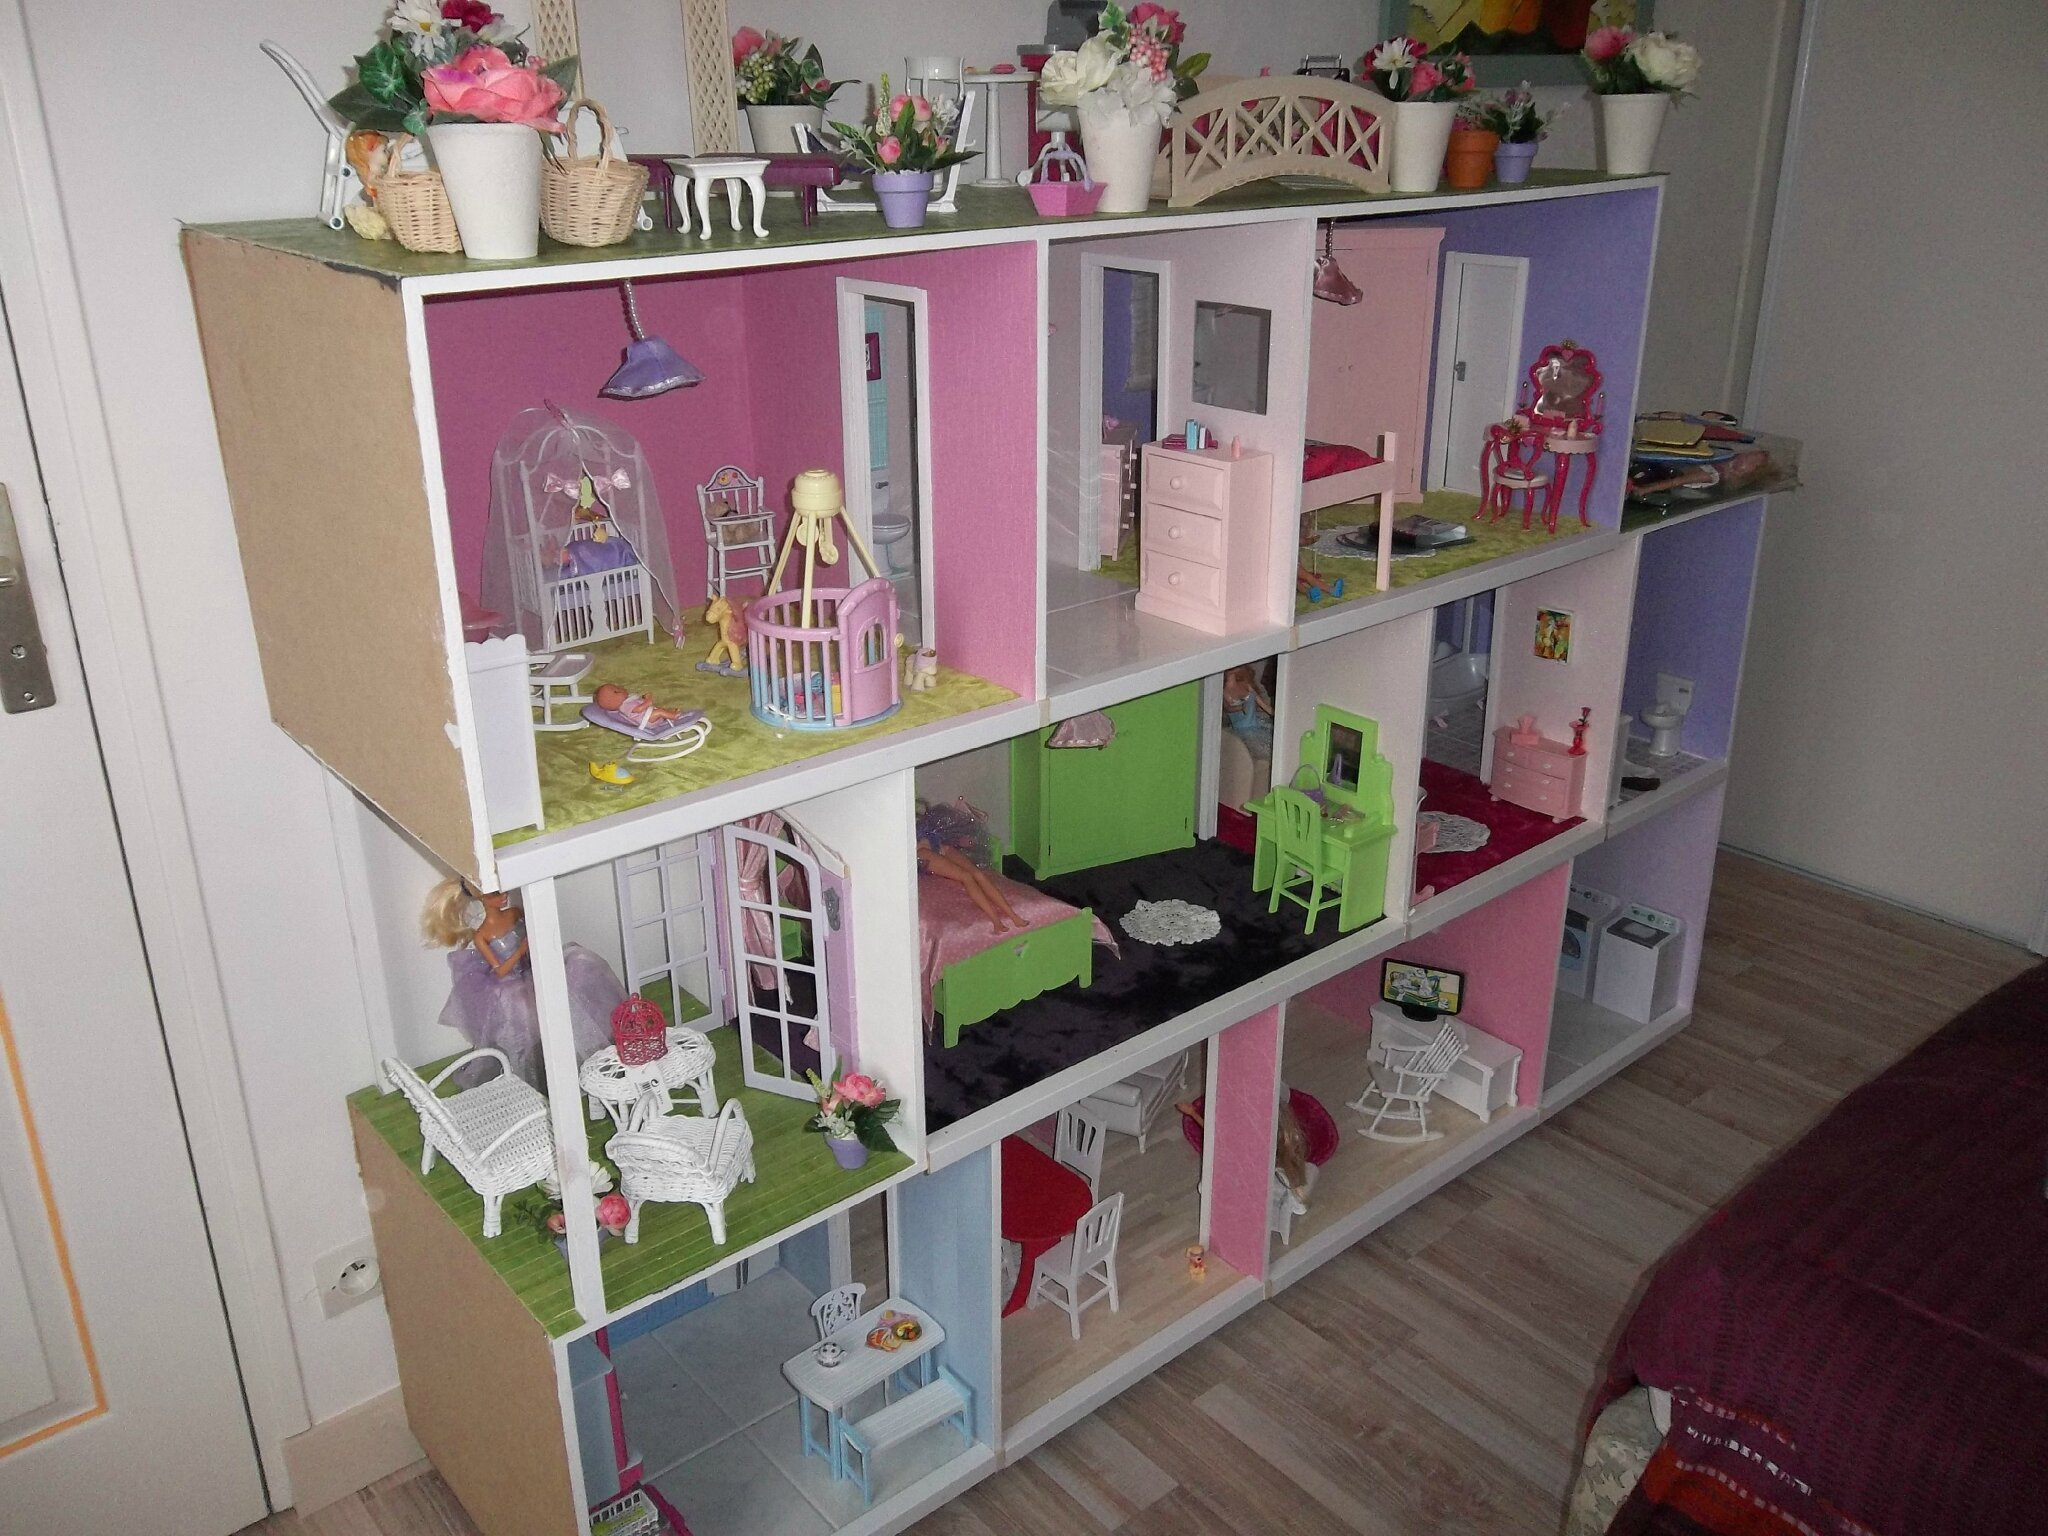 fabriquer maison de barbie segu maison. Black Bedroom Furniture Sets. Home Design Ideas